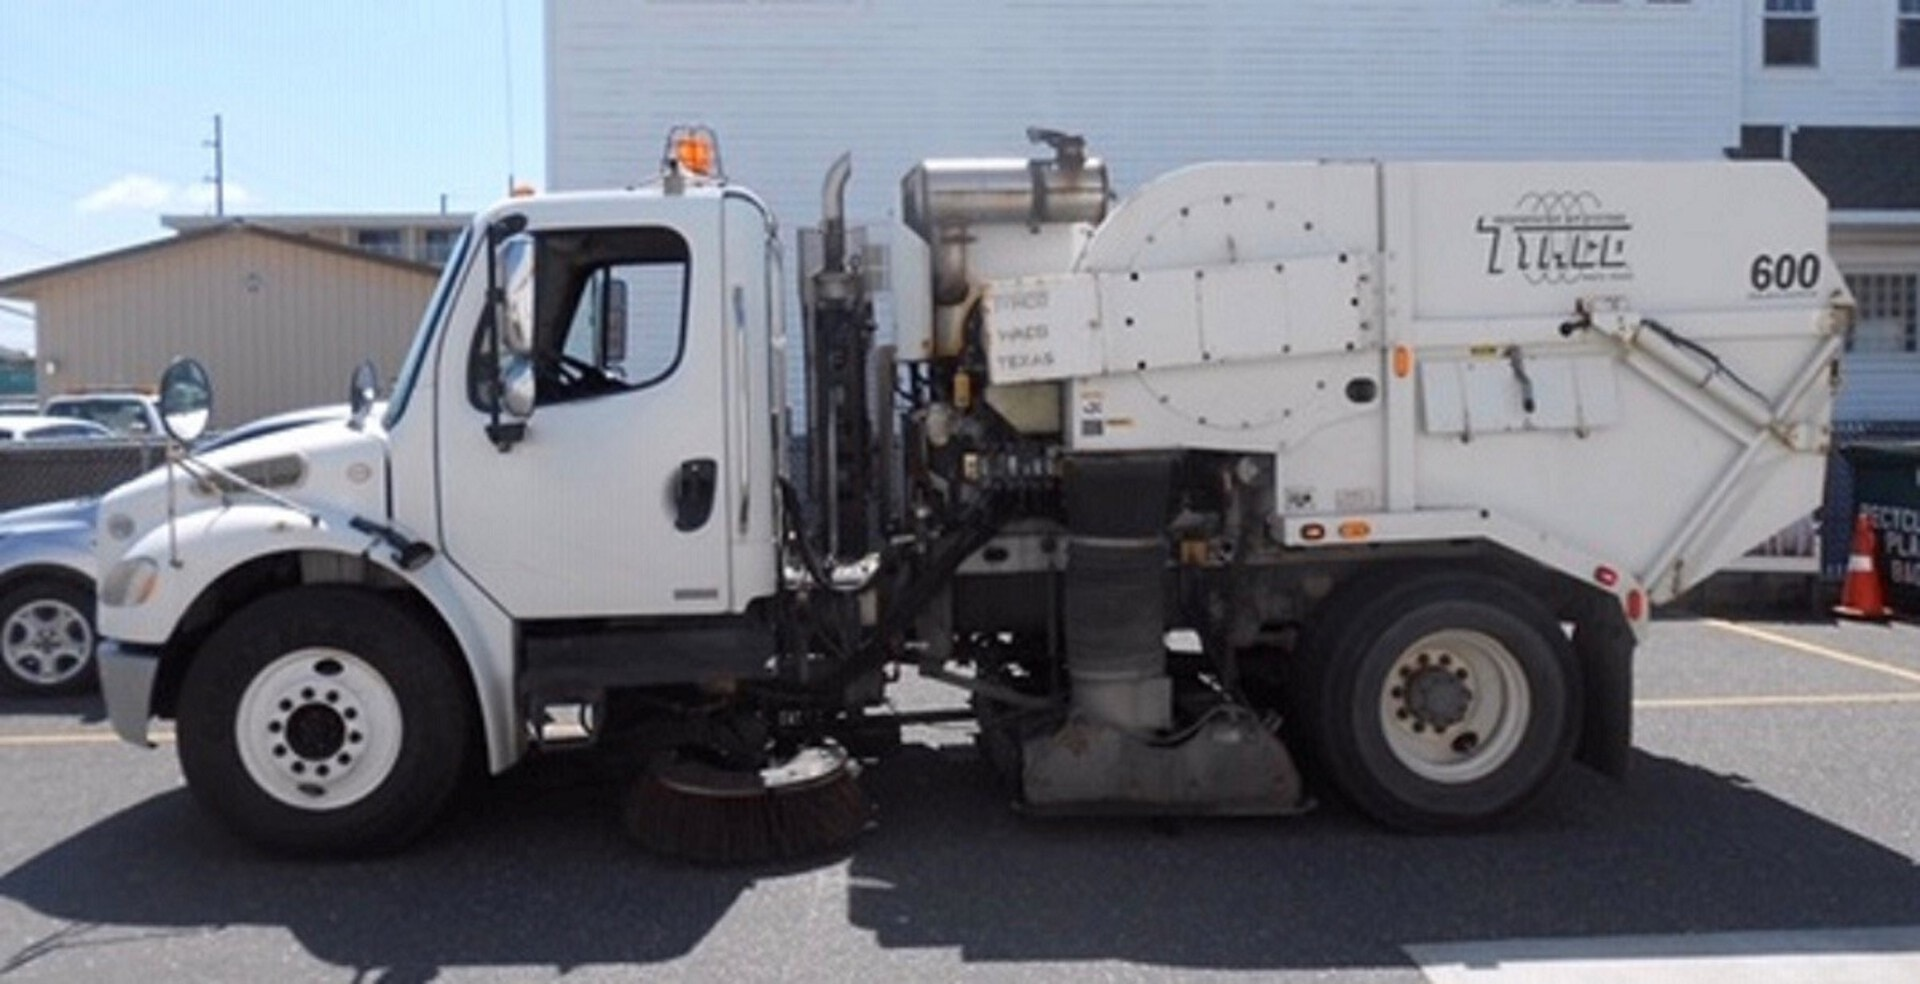 Used, 2010, Tymco, 600 BAH Street Sweeper, Sweepers